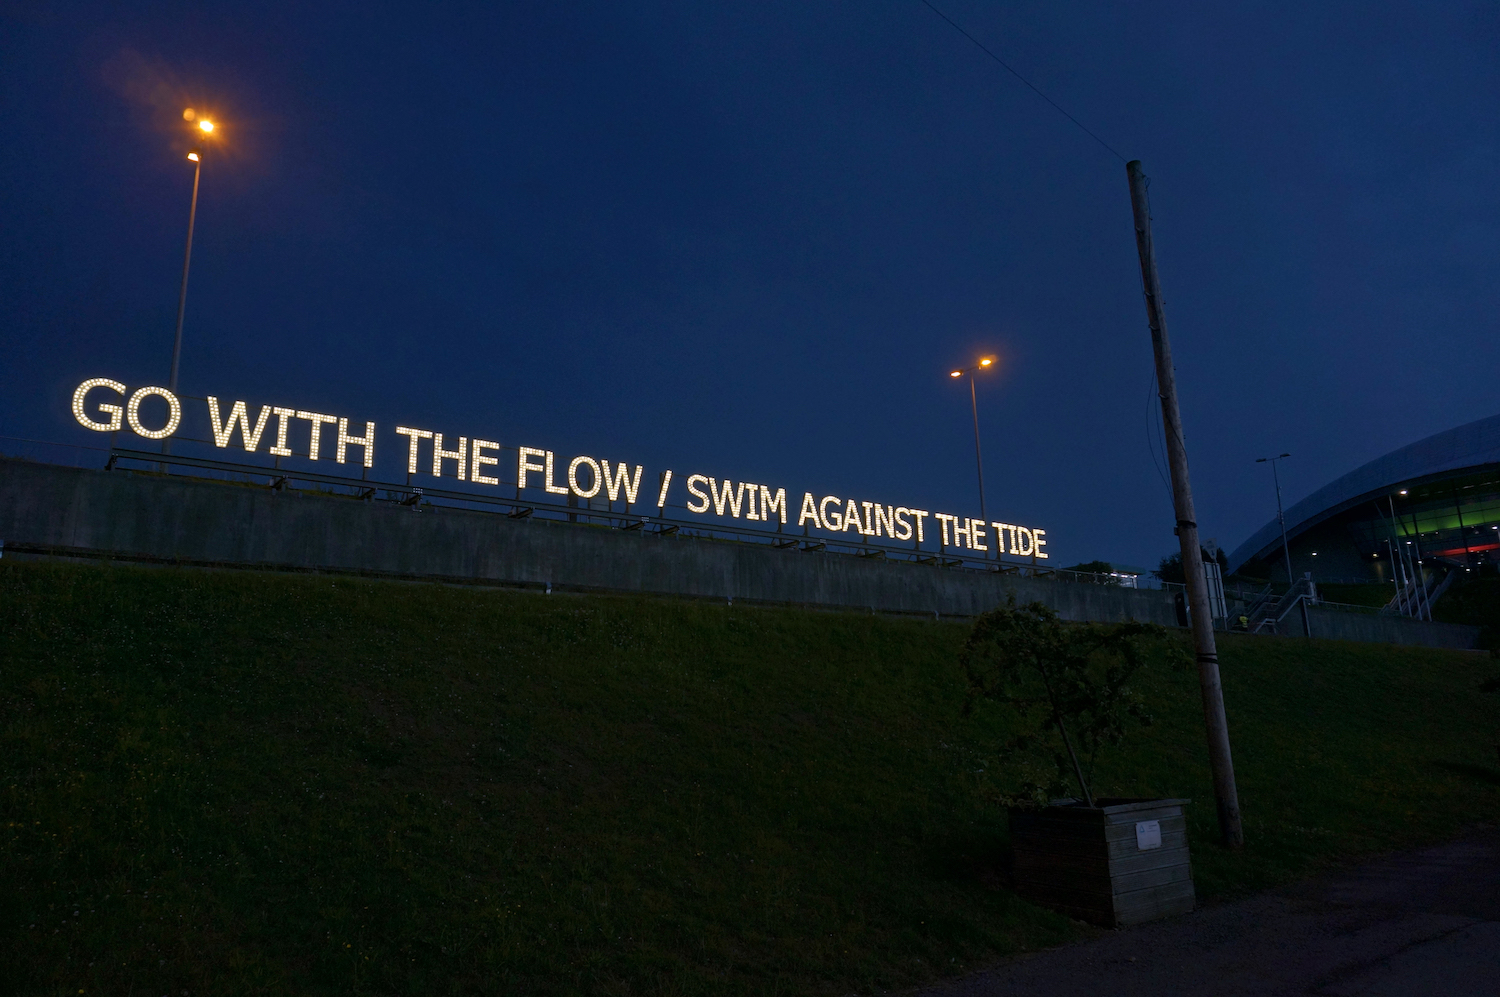 Tim Etchells, With/Against, 2018. Great Exhibition of the North, Newcastle, UK.